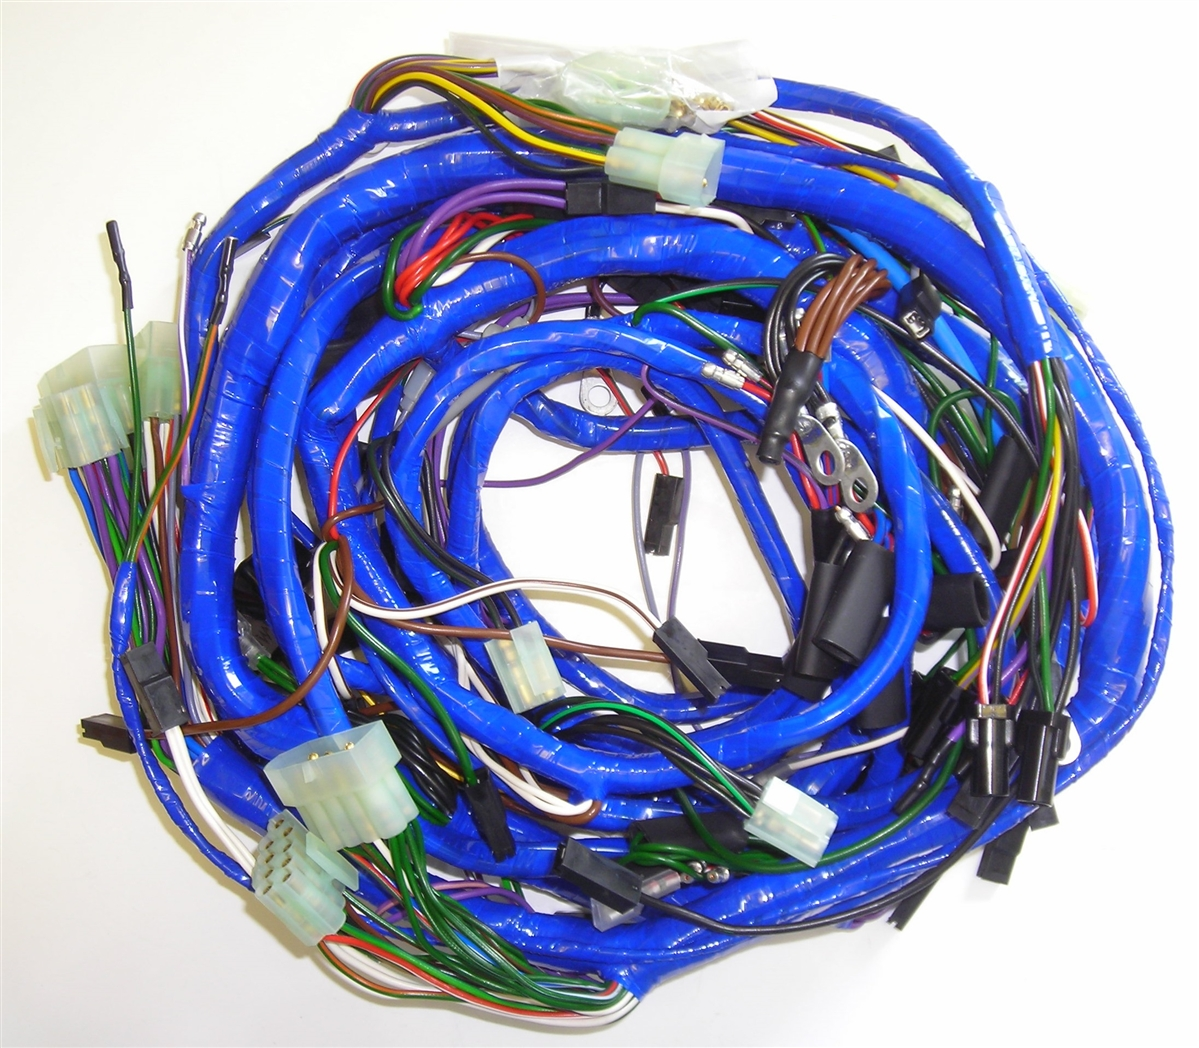 Mgb Wiring Harness Tape : Mgb wiring harness diagram images